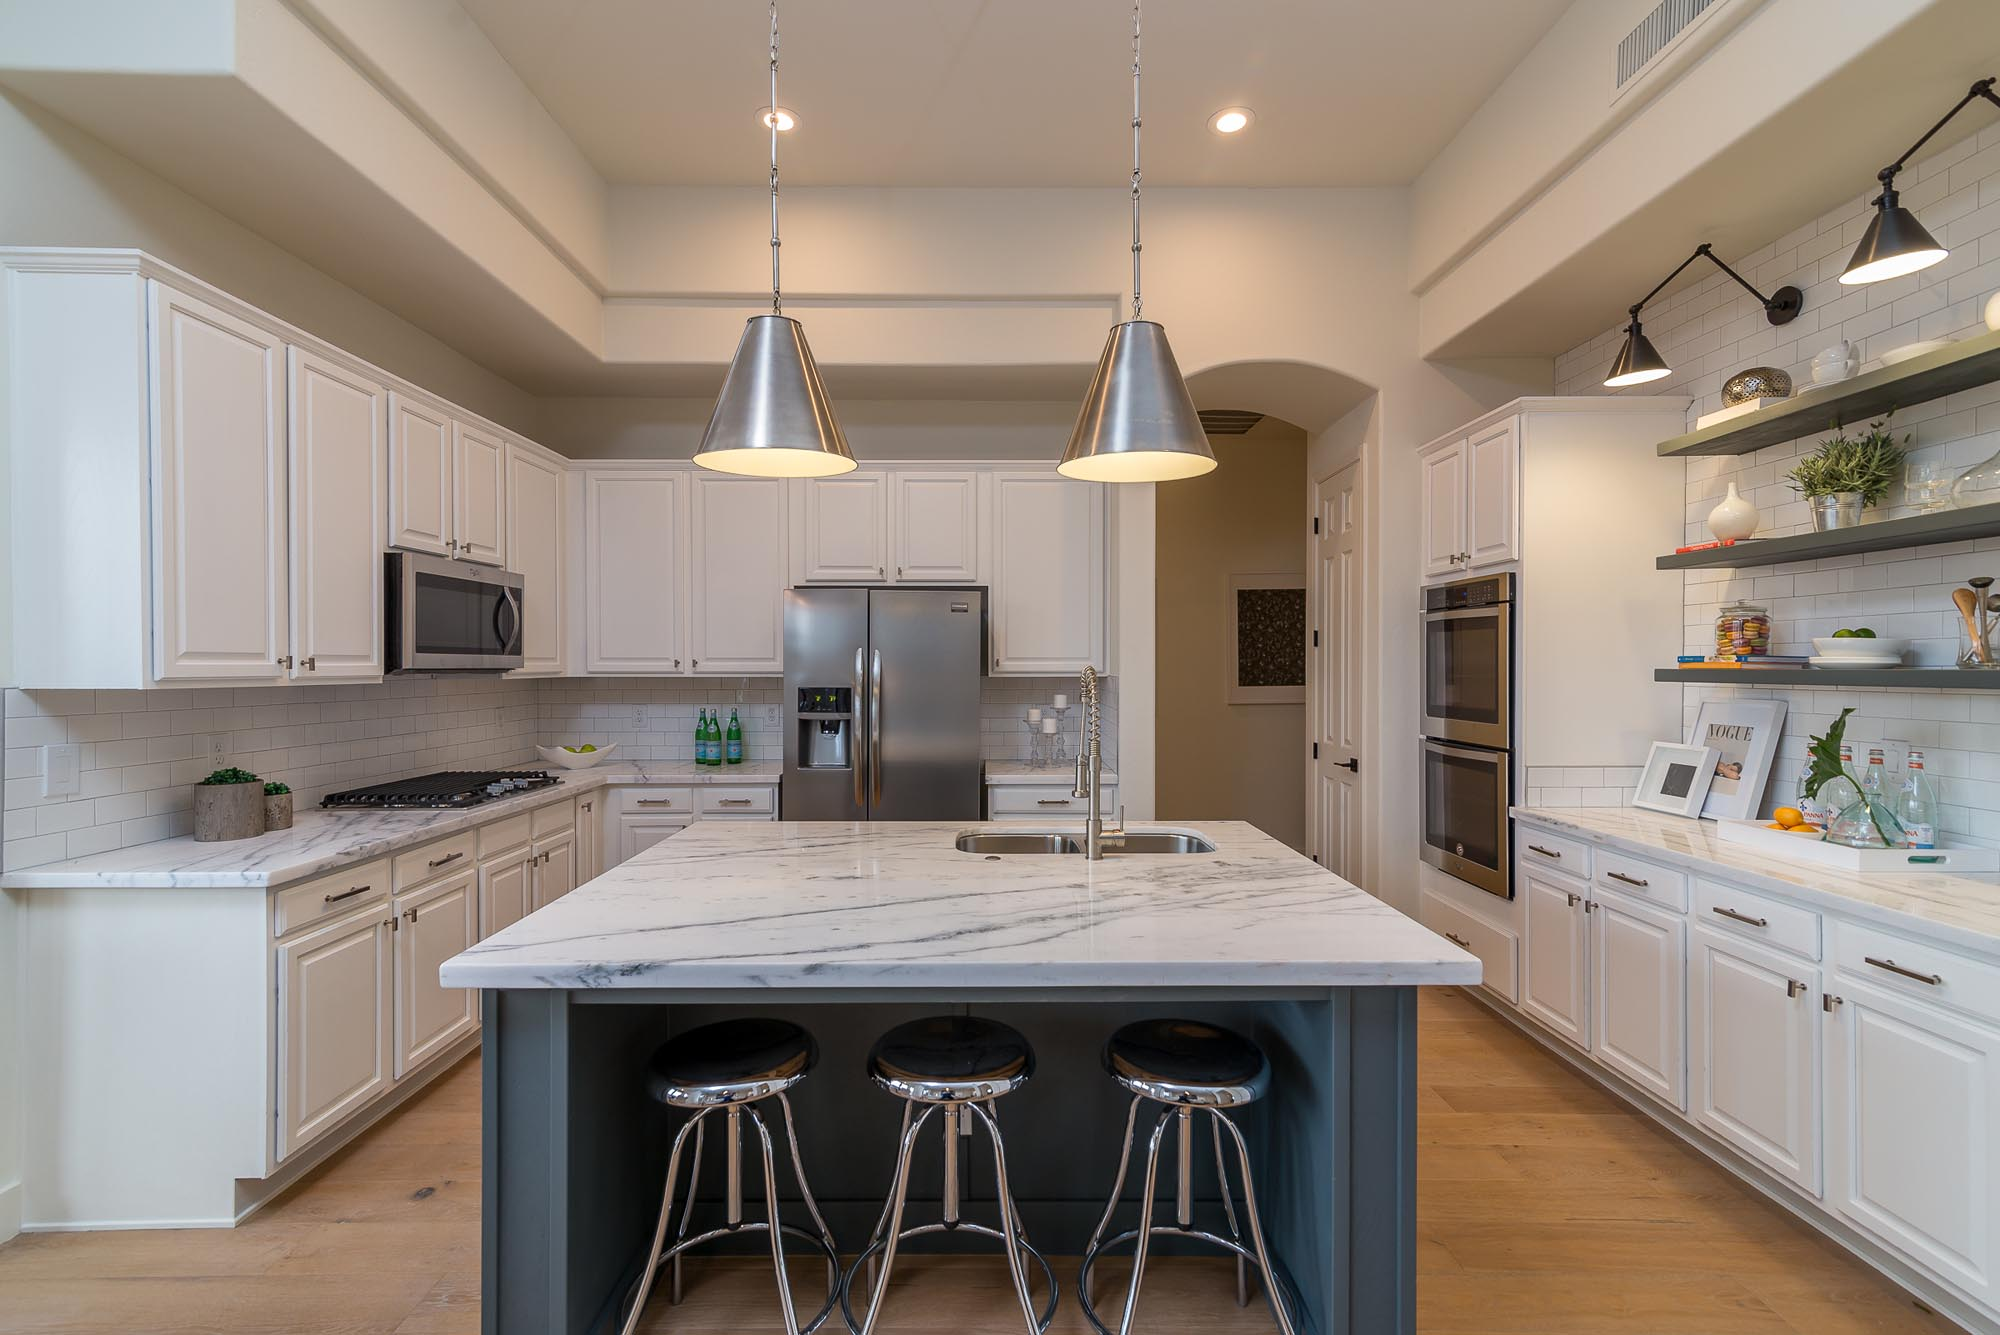 Kitchen with black and white countertops and three bar stools